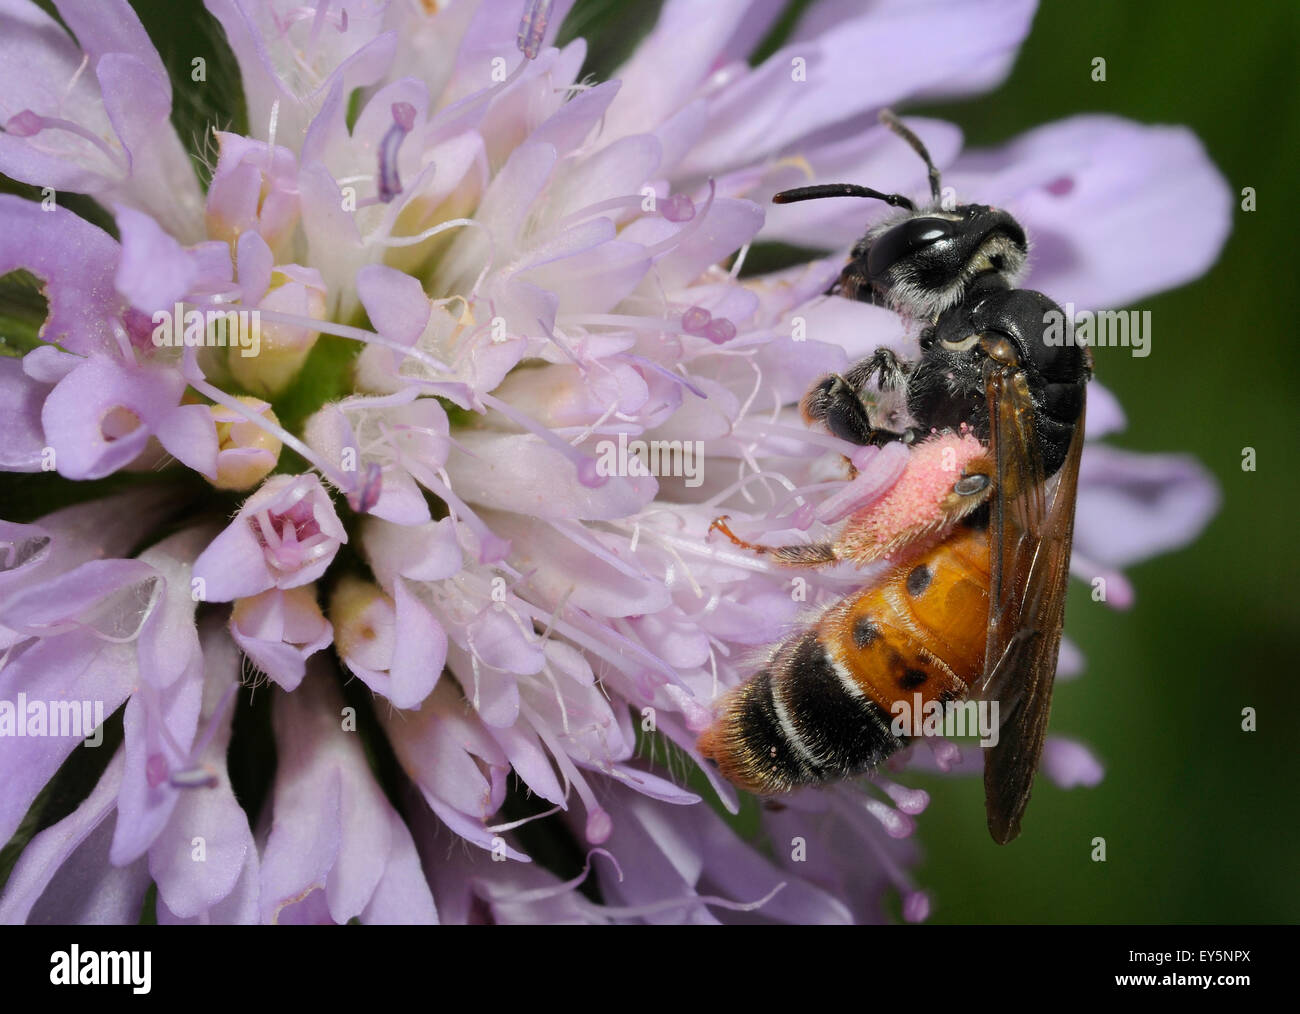 Solitary bee on Scabious flower - Northern Vosges - Stock Image